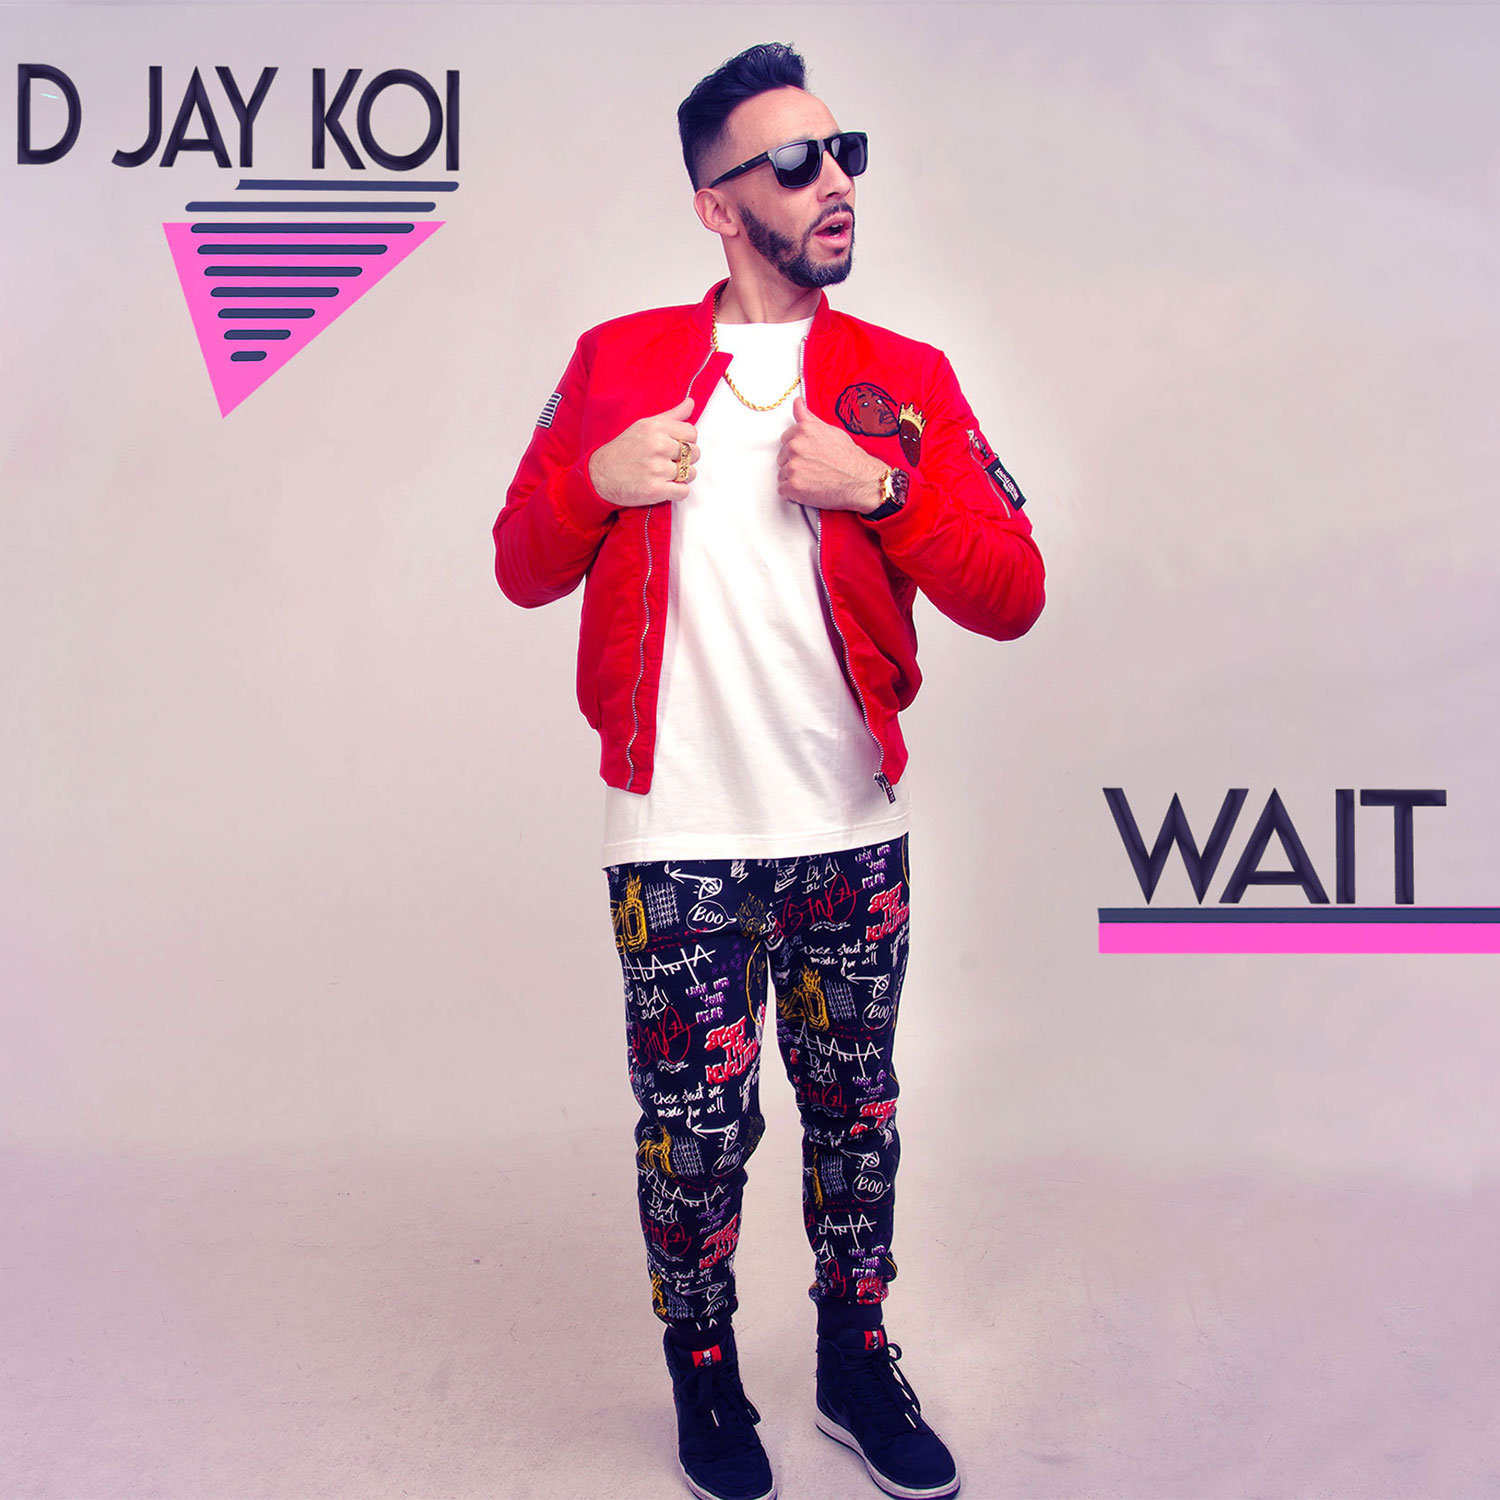 d jay koi Wait - Cover